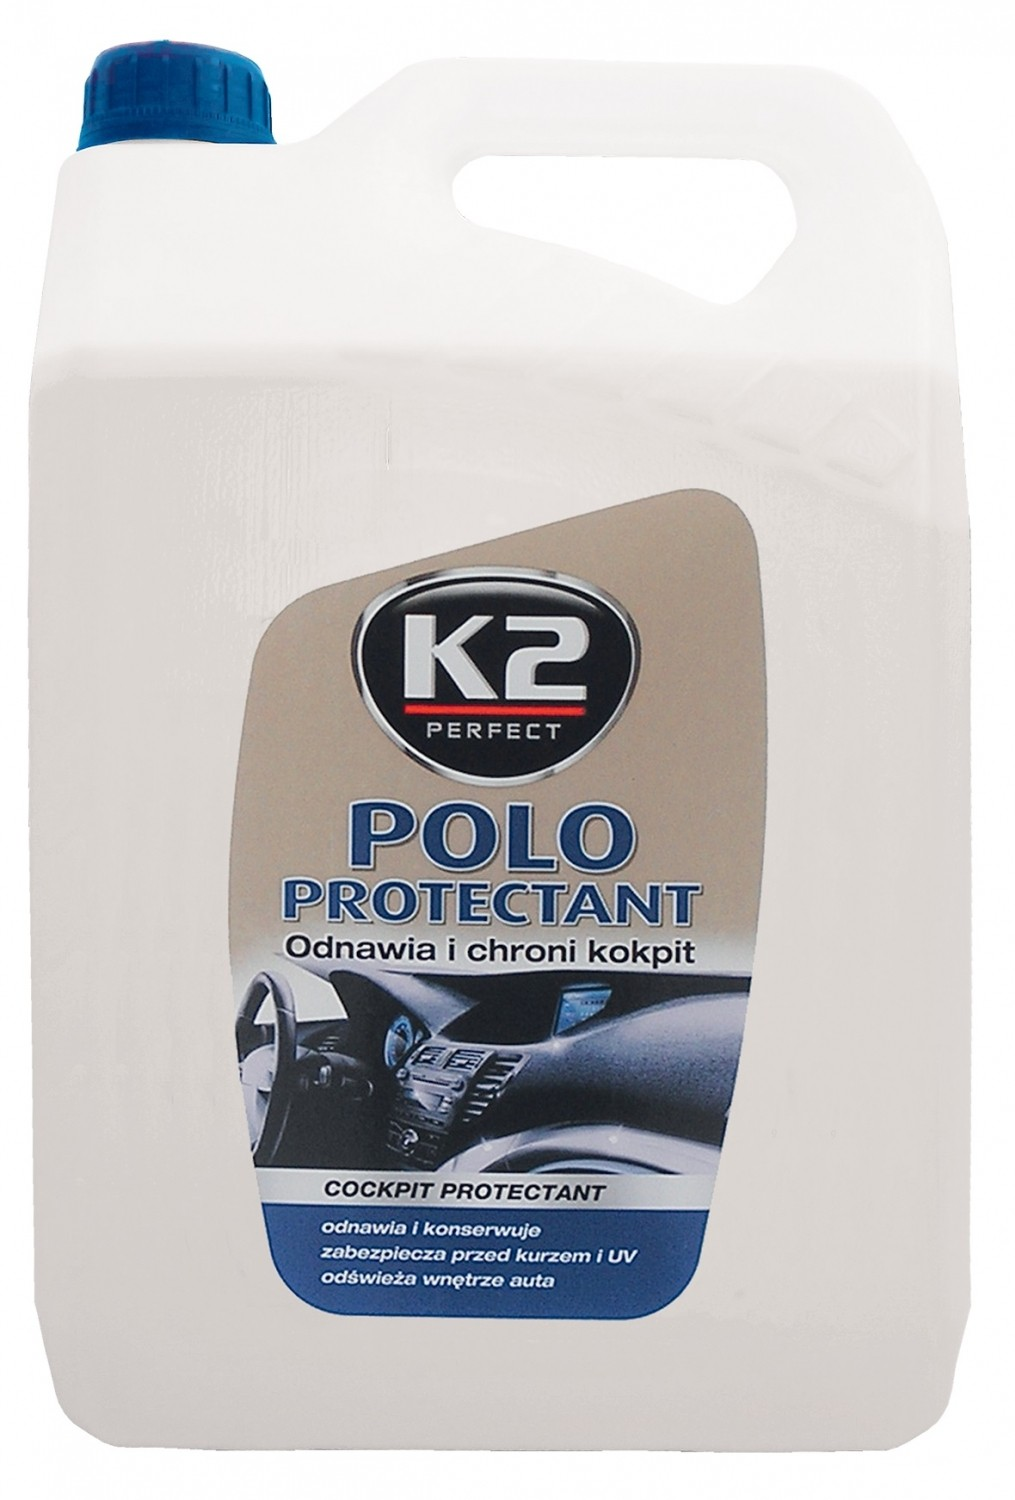 K2 POLO PROTECTANT 5 L